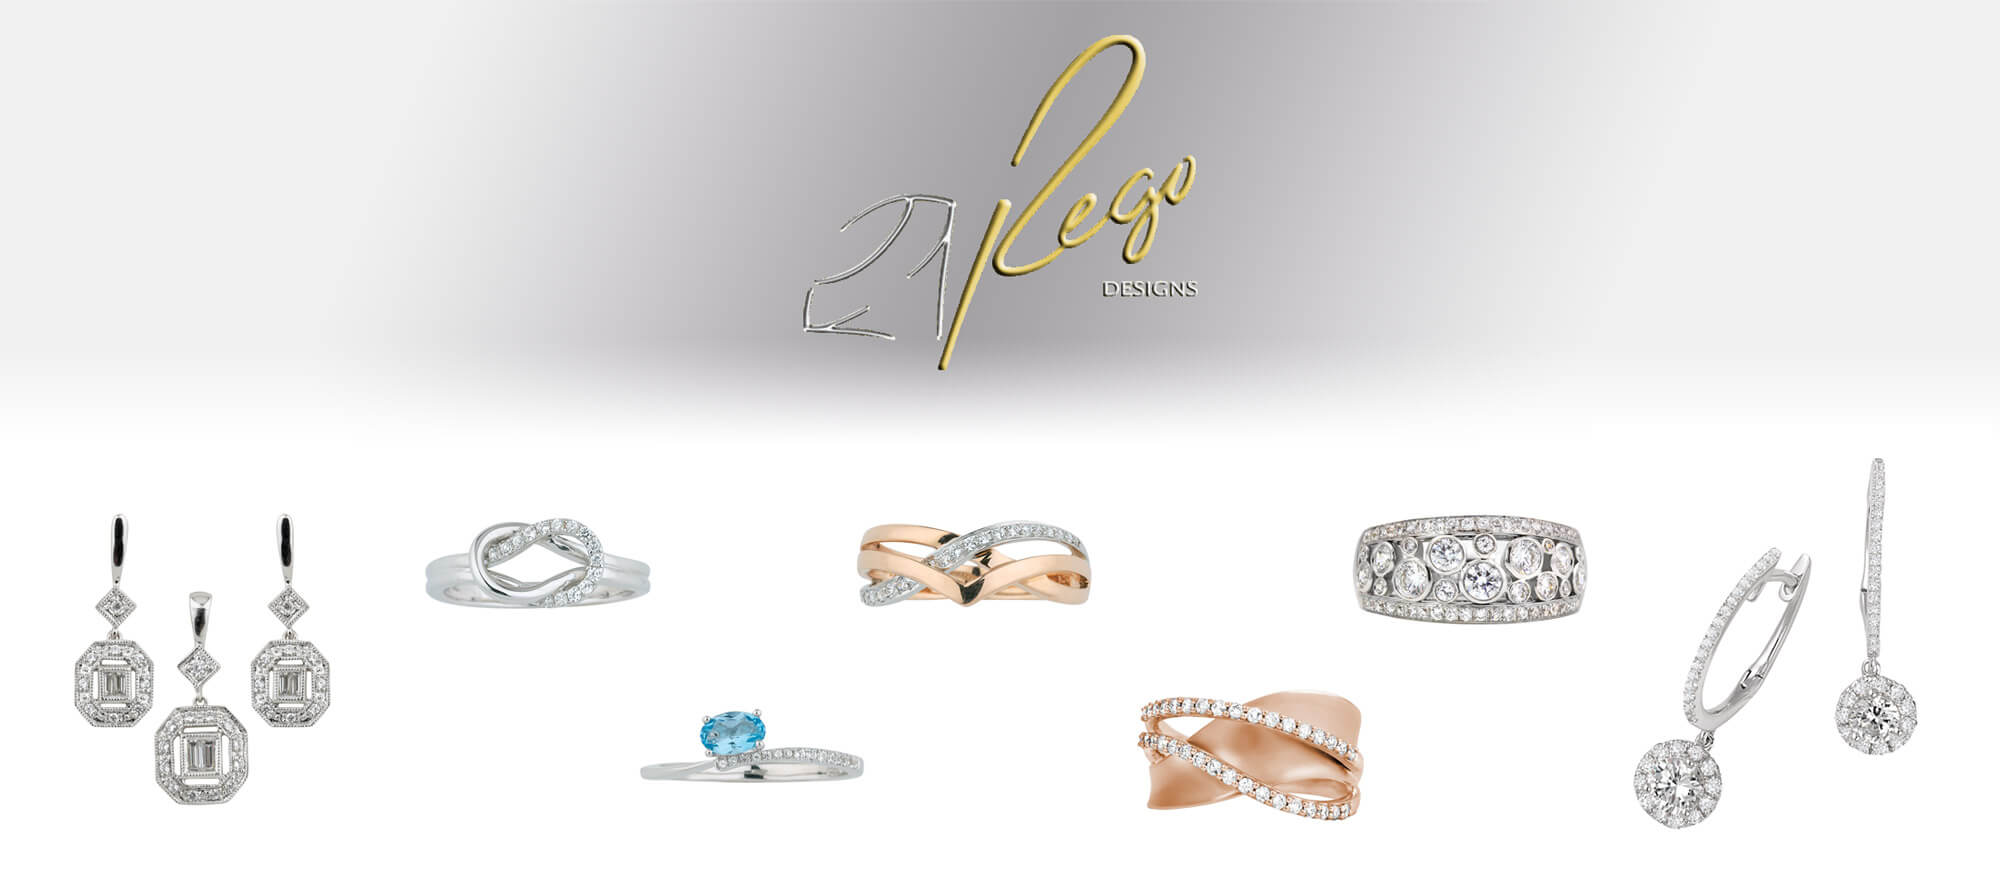 Grouping of rings and earings by Rego Designs